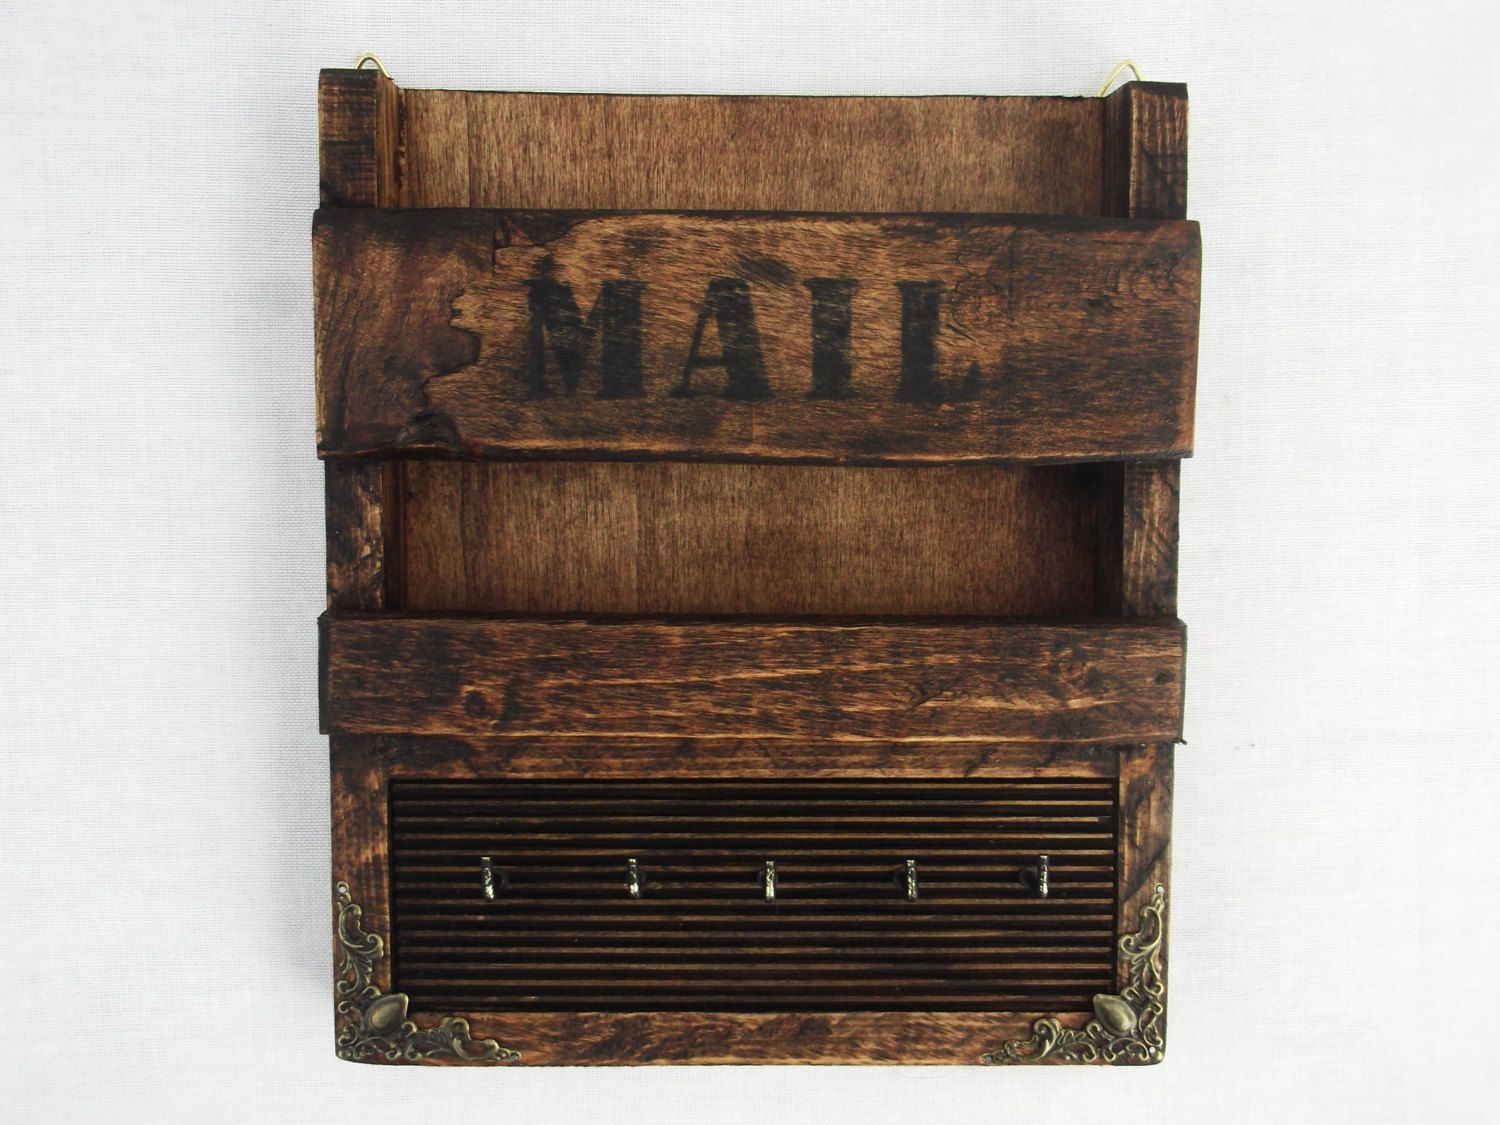 Rustic wooden wall hanging mail holder and key rack letter organizer hooks mail holder - Wooden letter and key holder ...